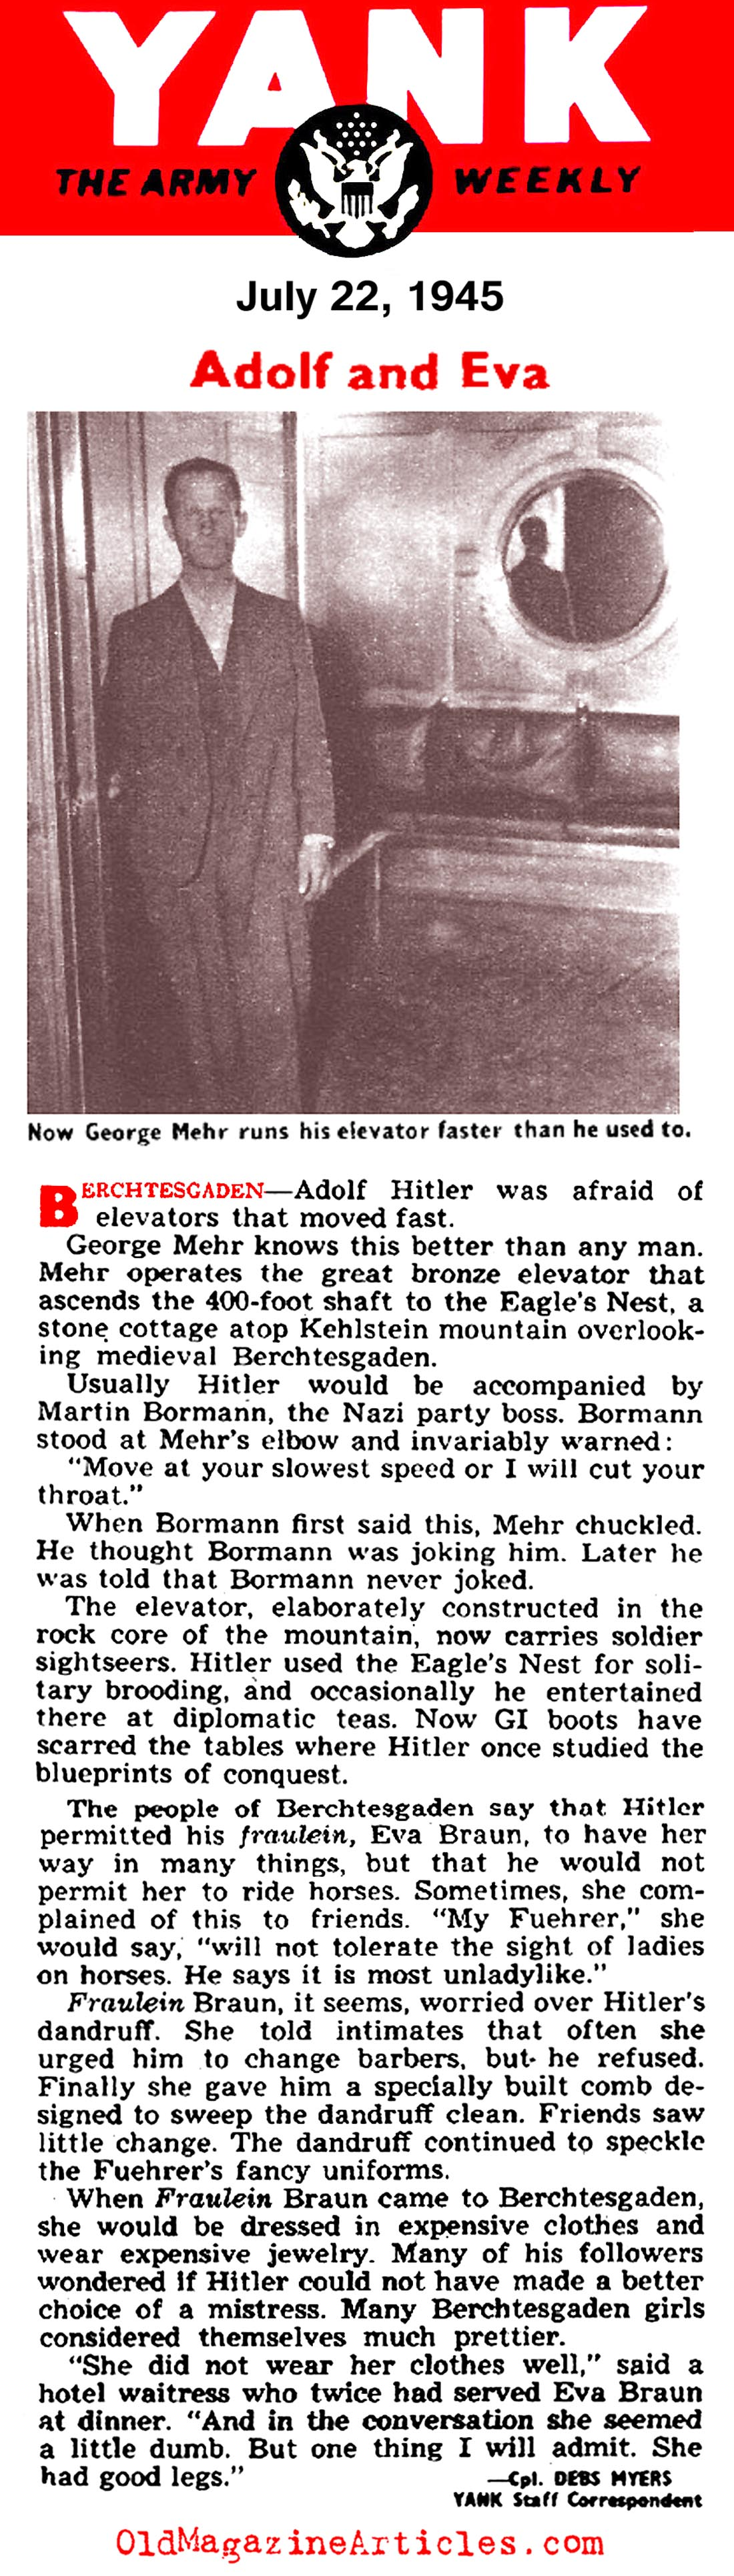 Some Trivial Facts About Hitler (Yank Magazine, 1945)